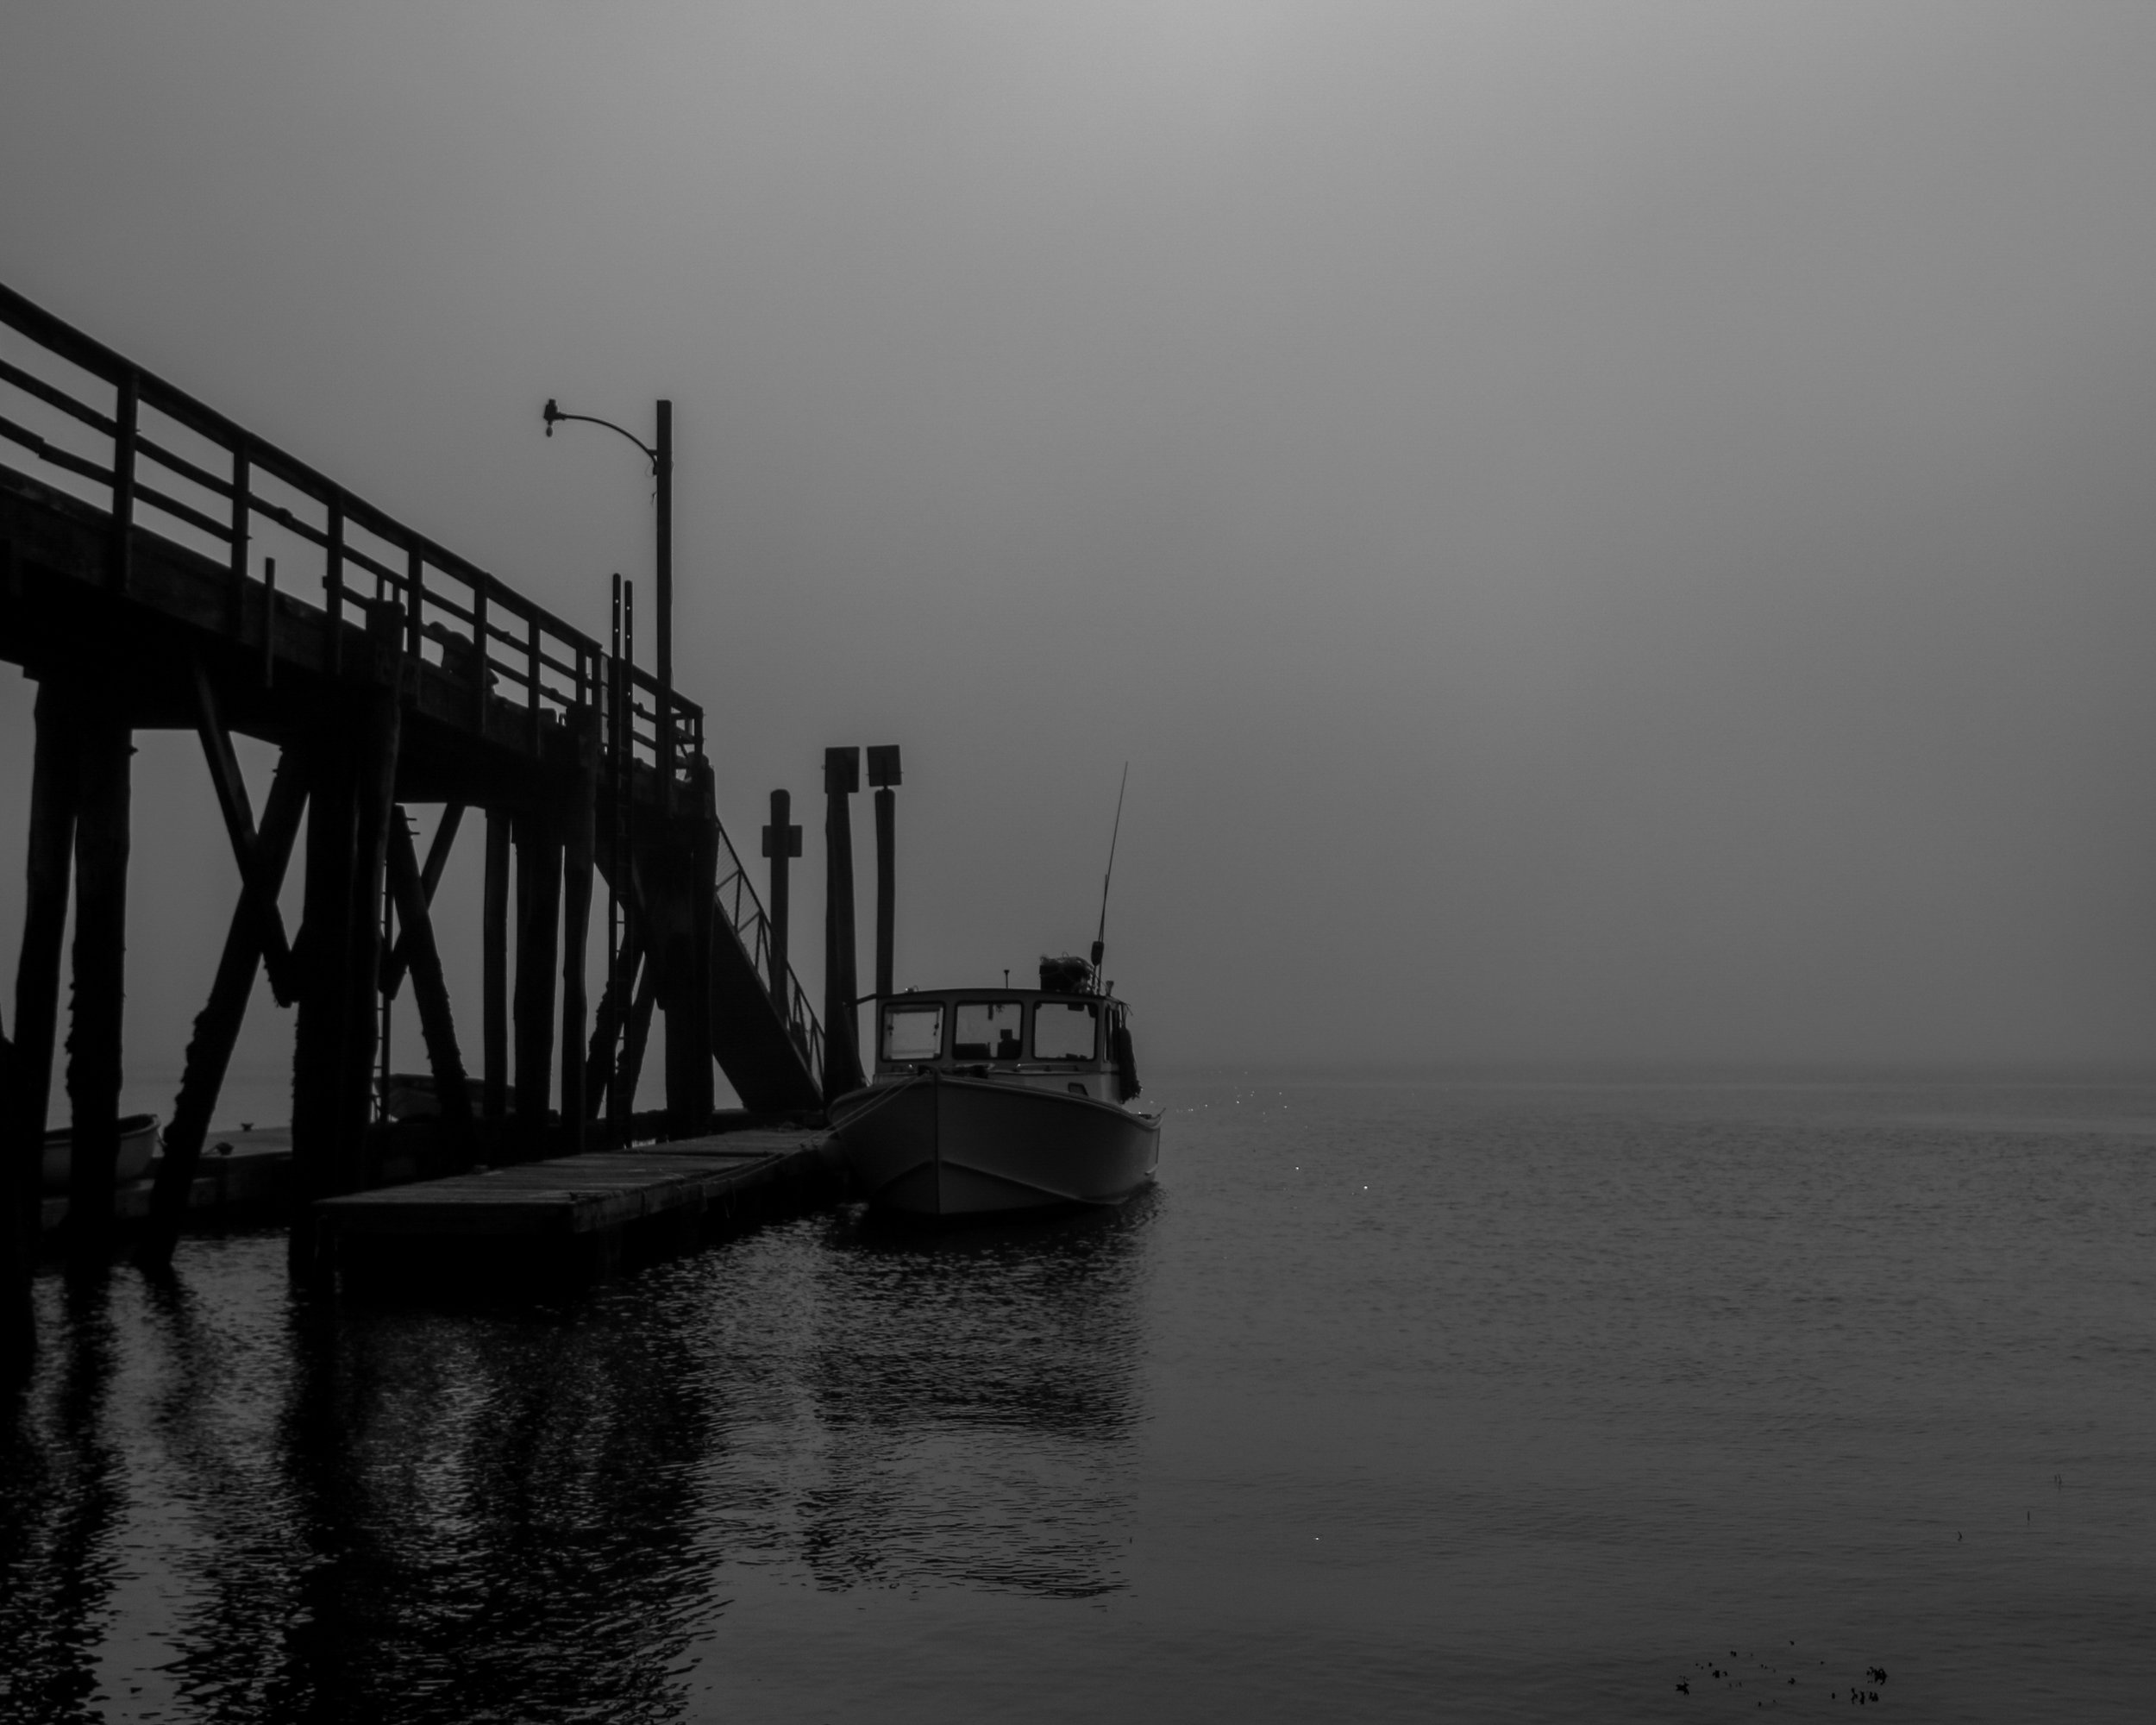 Image depicts a black and white photograph of a fishing boat docked at a pier. The tide is low, so the pier stands much higher than the level of the water. The photo seems to be taken from shore, and low contrast in the photo creates a gloomy, gray atmosphere.